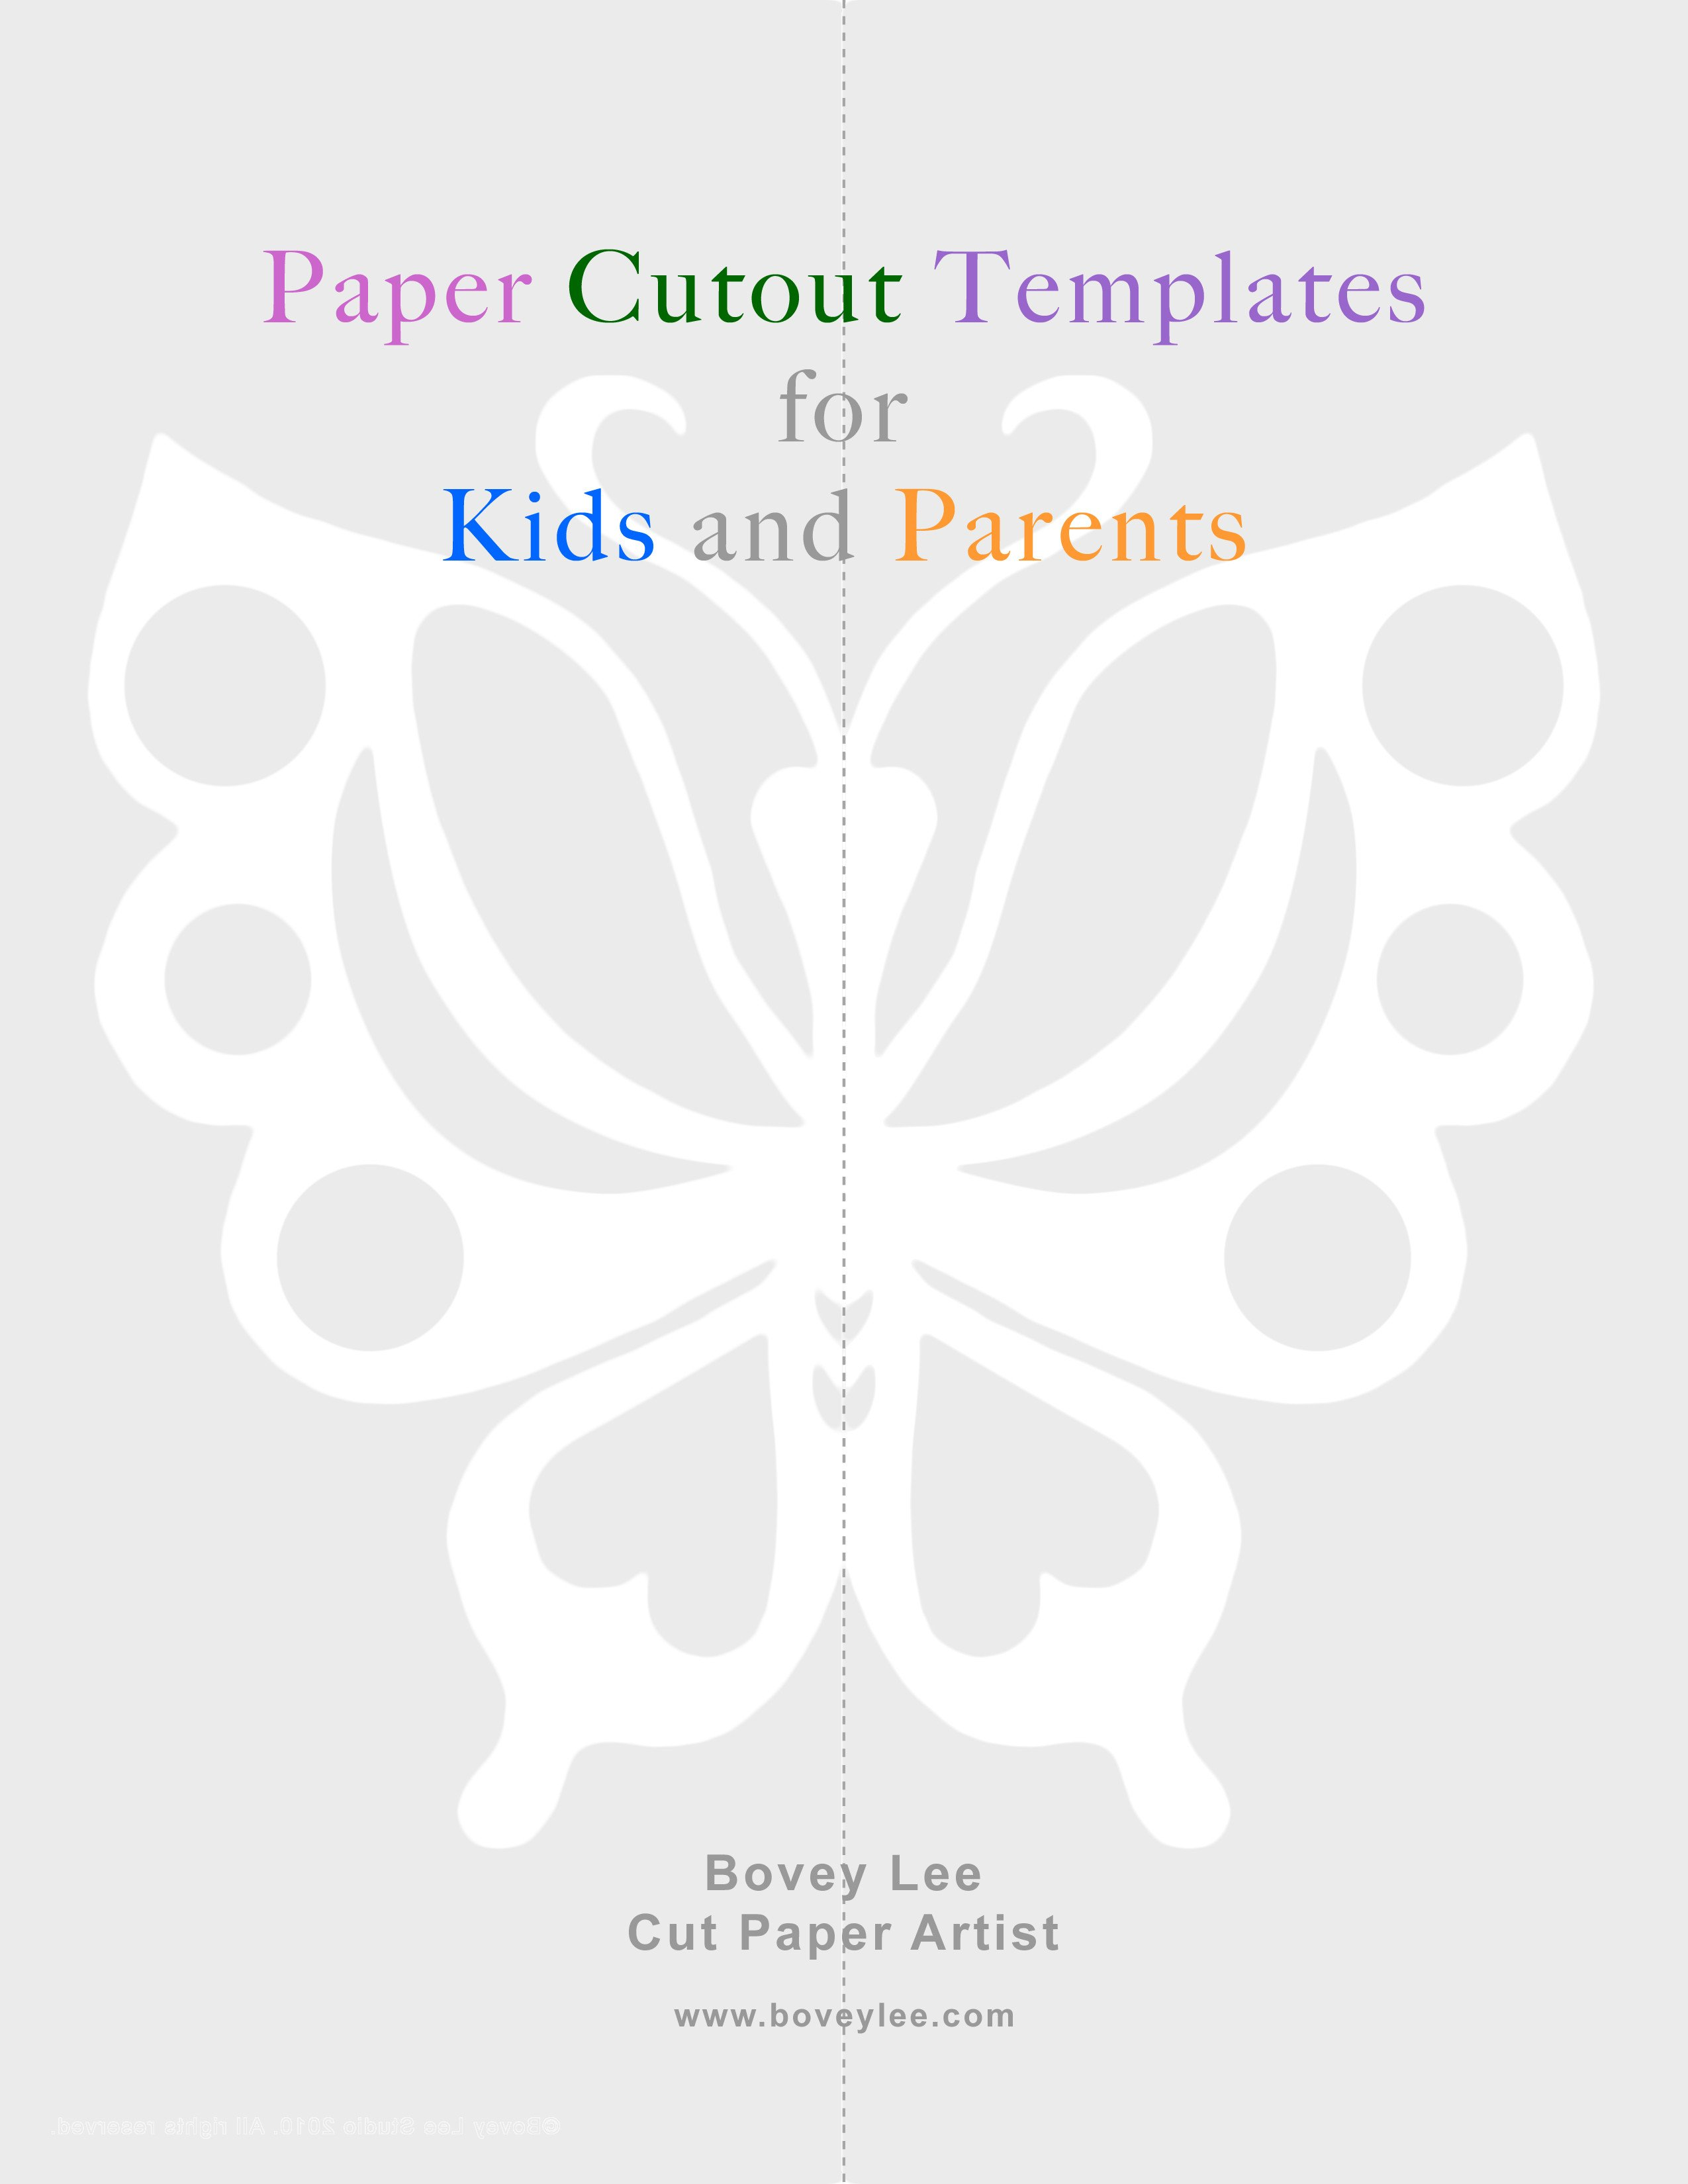 Paper Cut Outs Templates Free Paper Cutout Templates for Kids and Parents